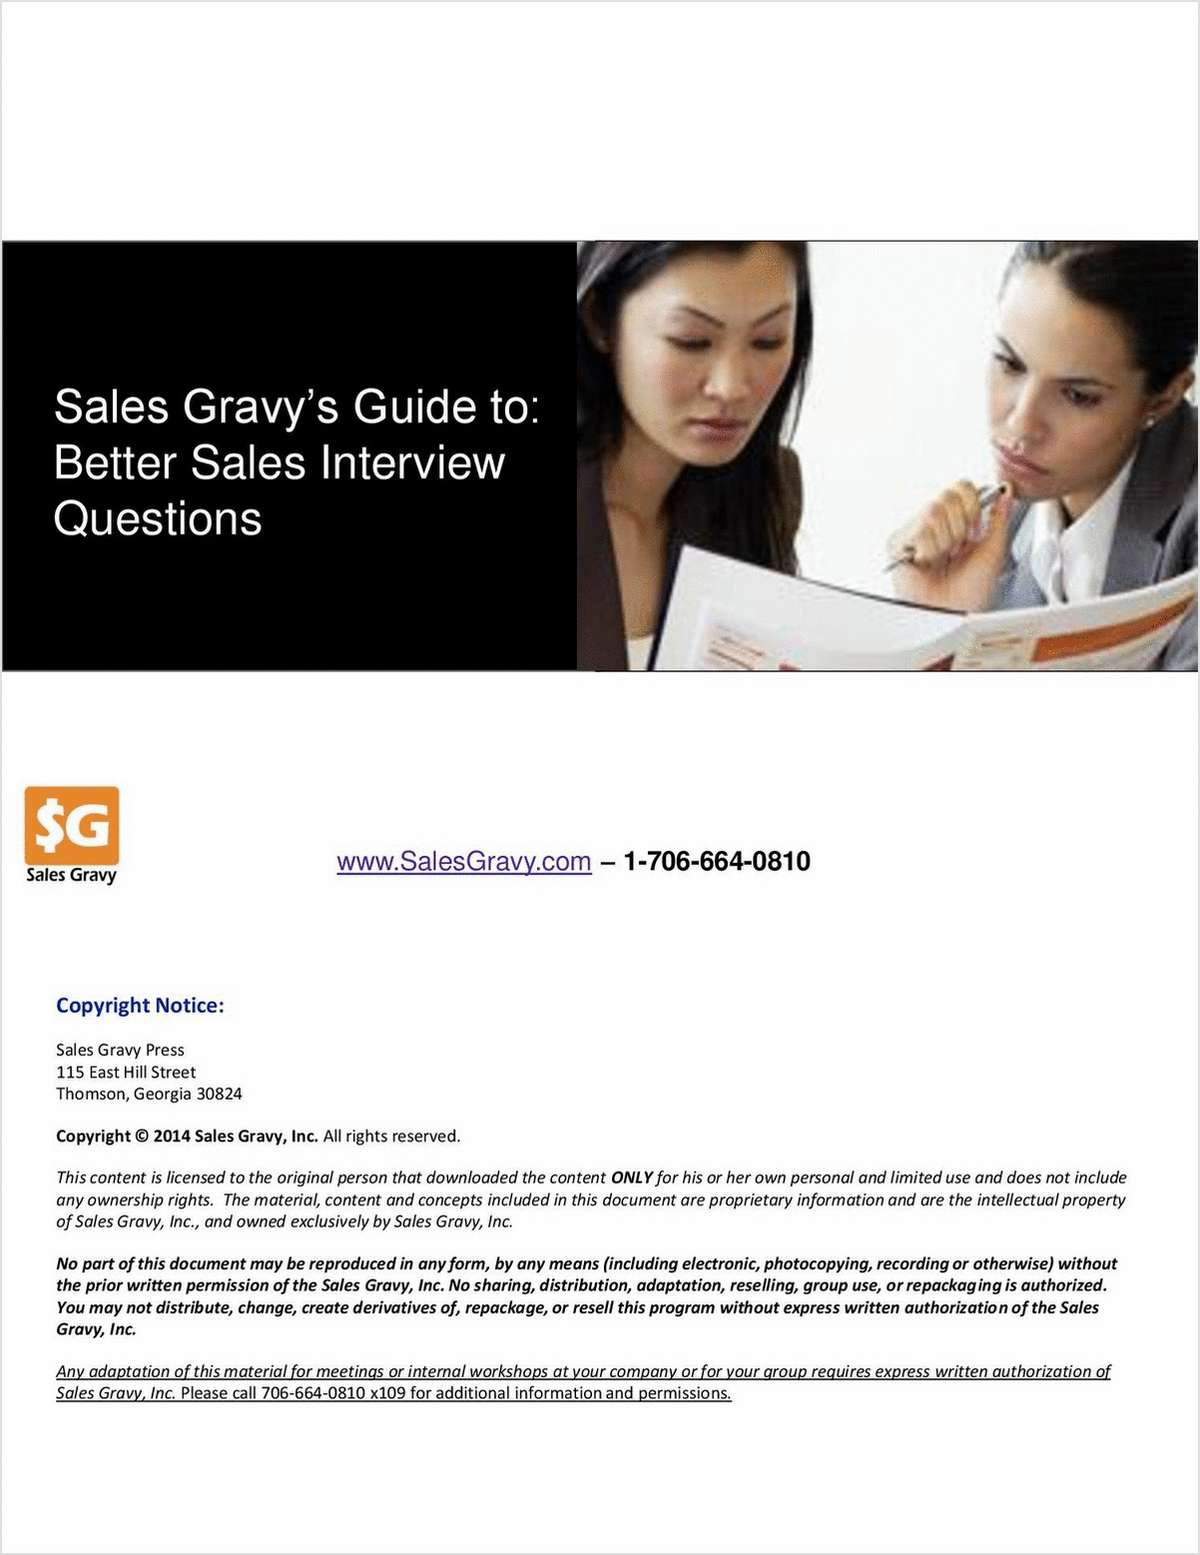 Sales Gravy's Guide to: Better Sales Interview Questions